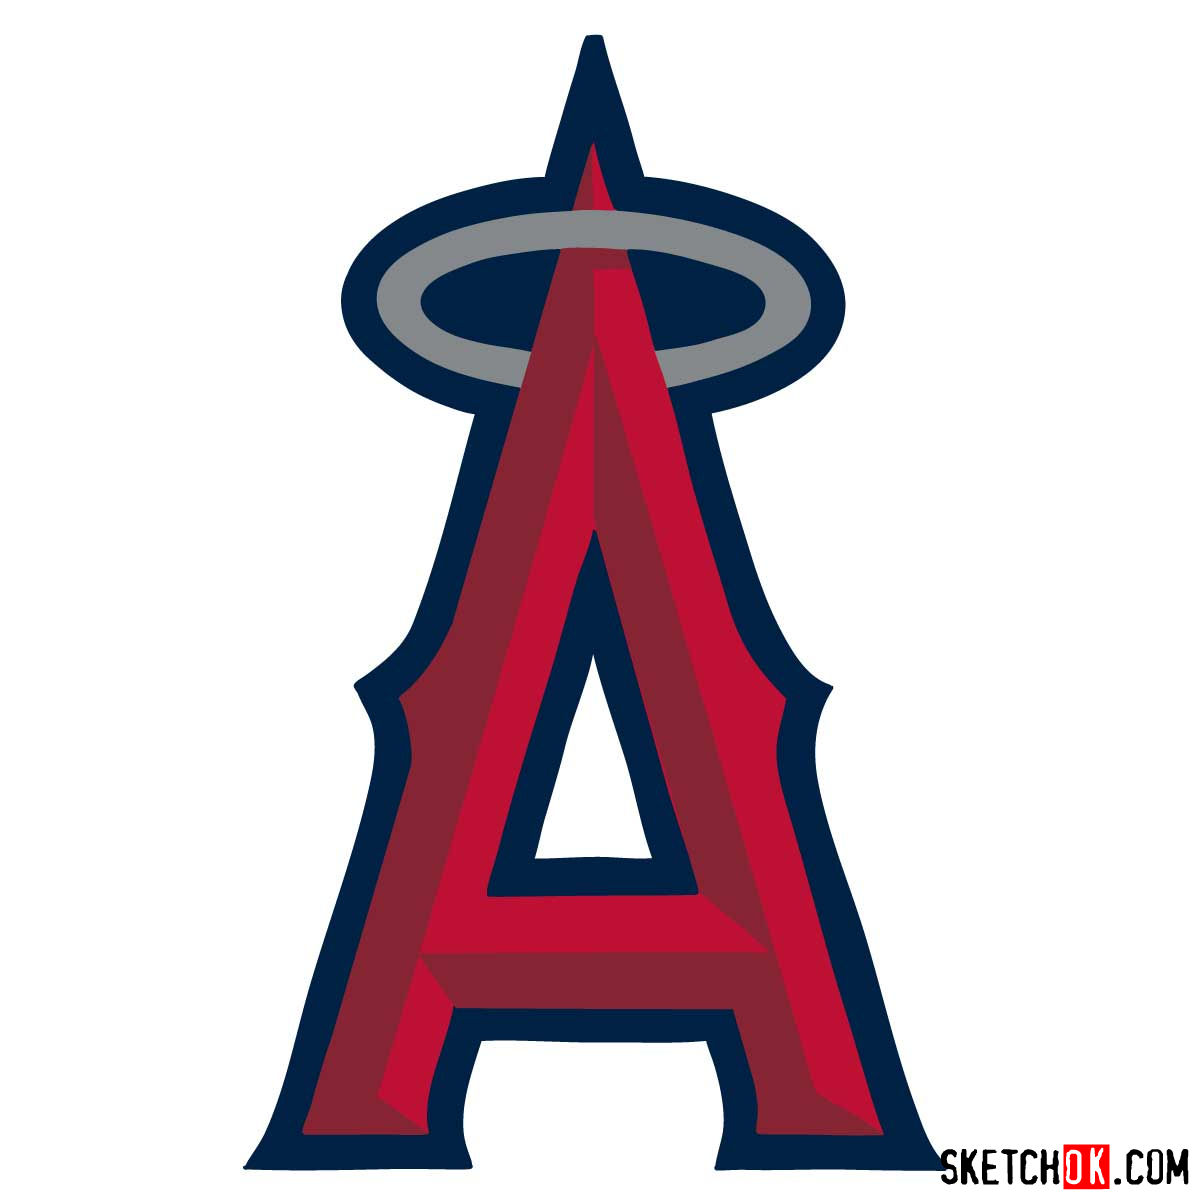 How to draw Los Angeles Angels logo | MLB logos